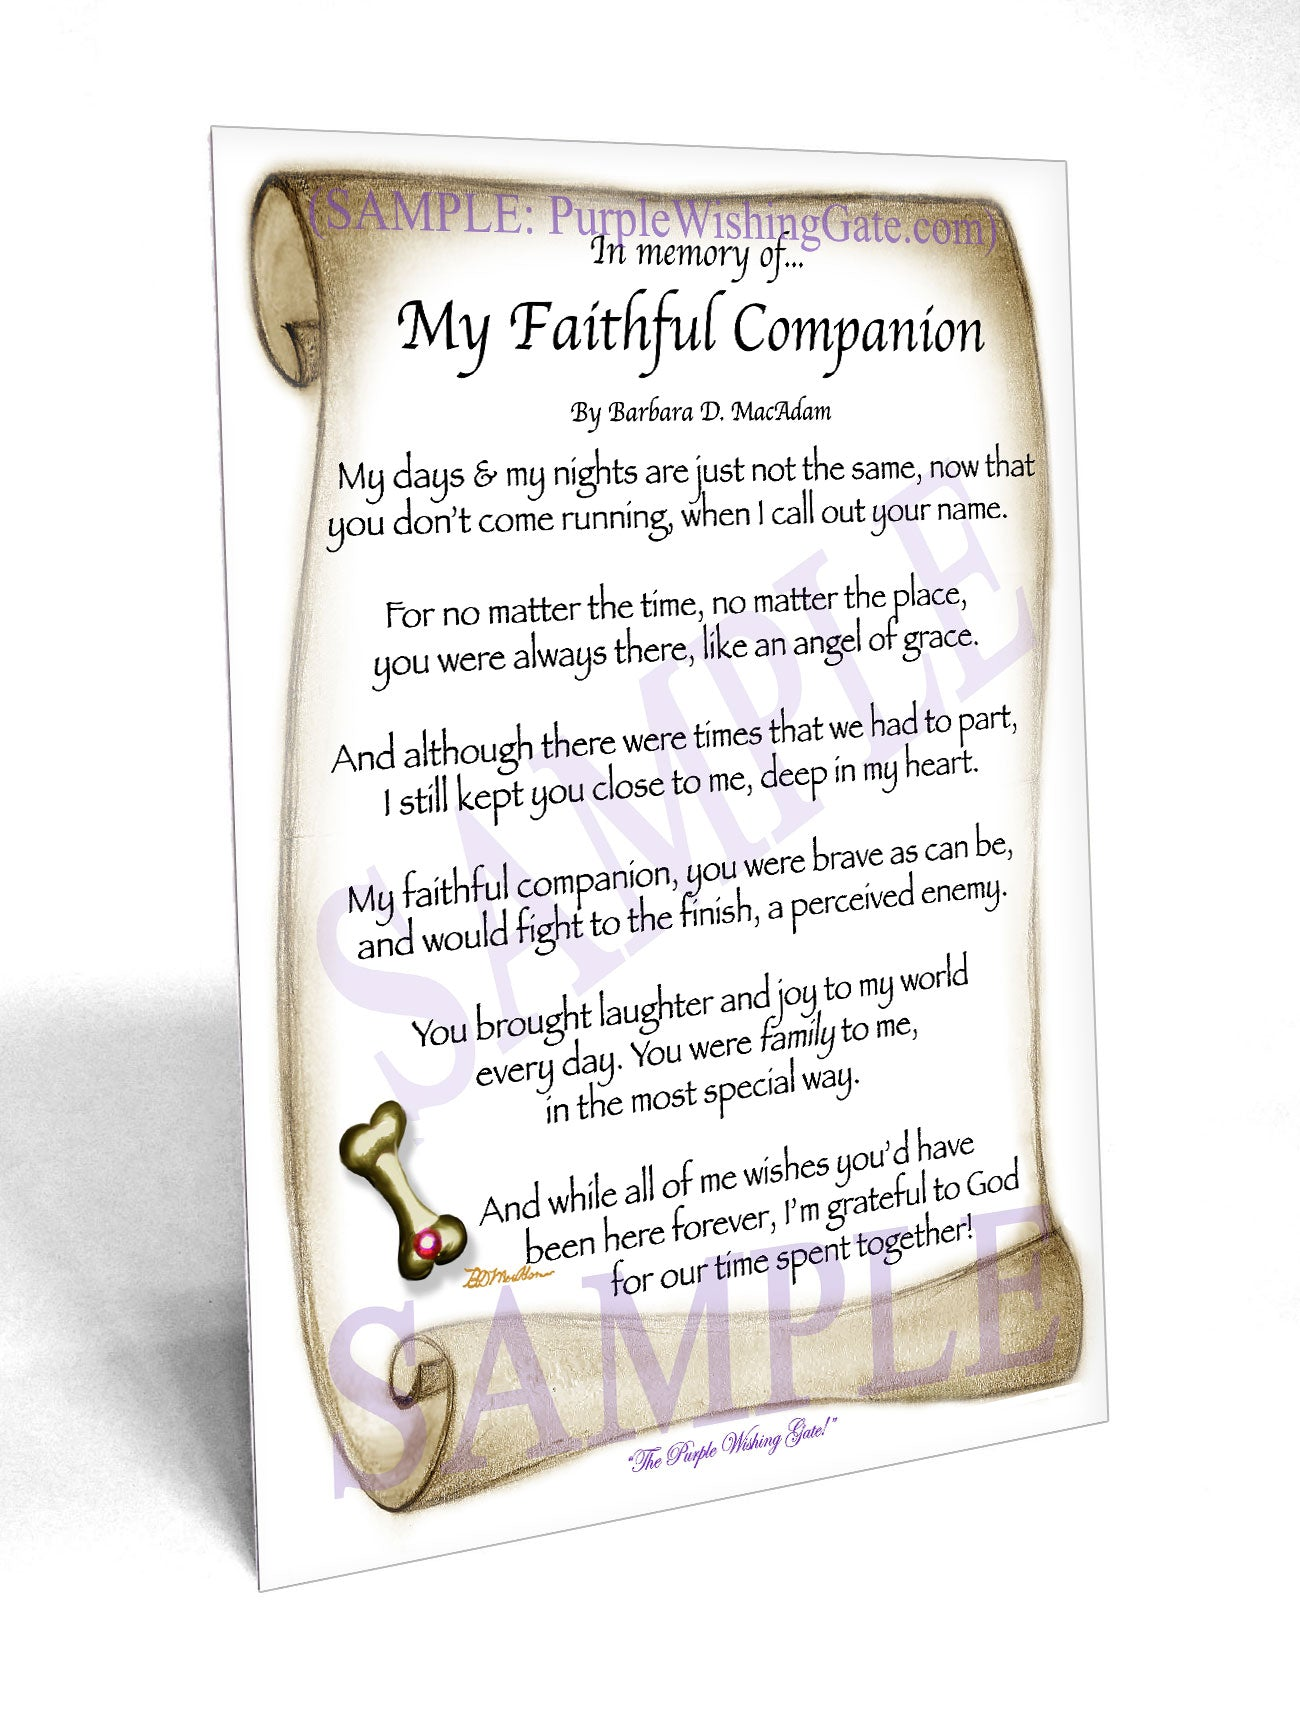 In memory of... My Faithful Companion - Pet Blessing - PurpleWishingGate.com